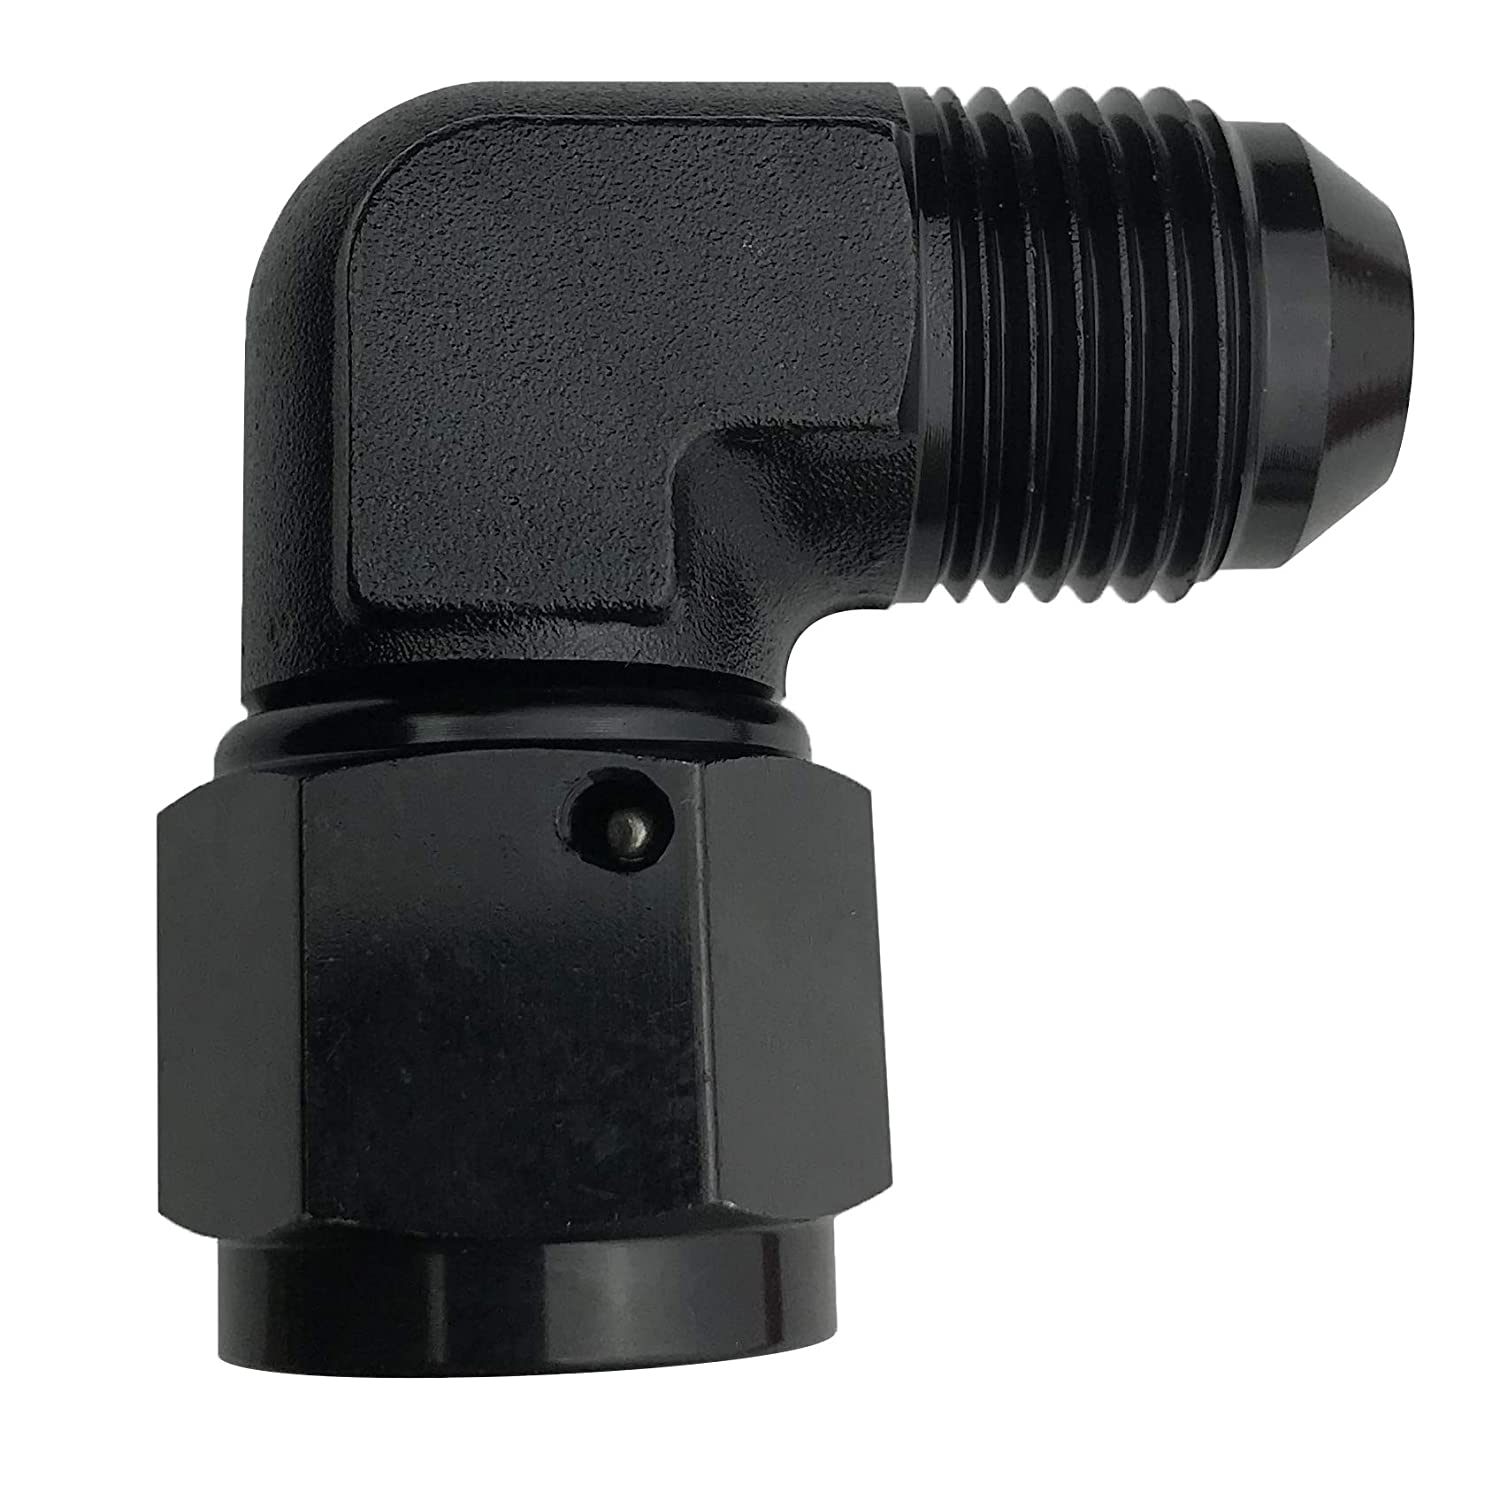 6AN Female Coupler Swivel Hose Union 90 Degree Elbow Aluminum Fuel Hose Fitting AN6 to AN6 Coupling Pipe Adapters Black Anodized